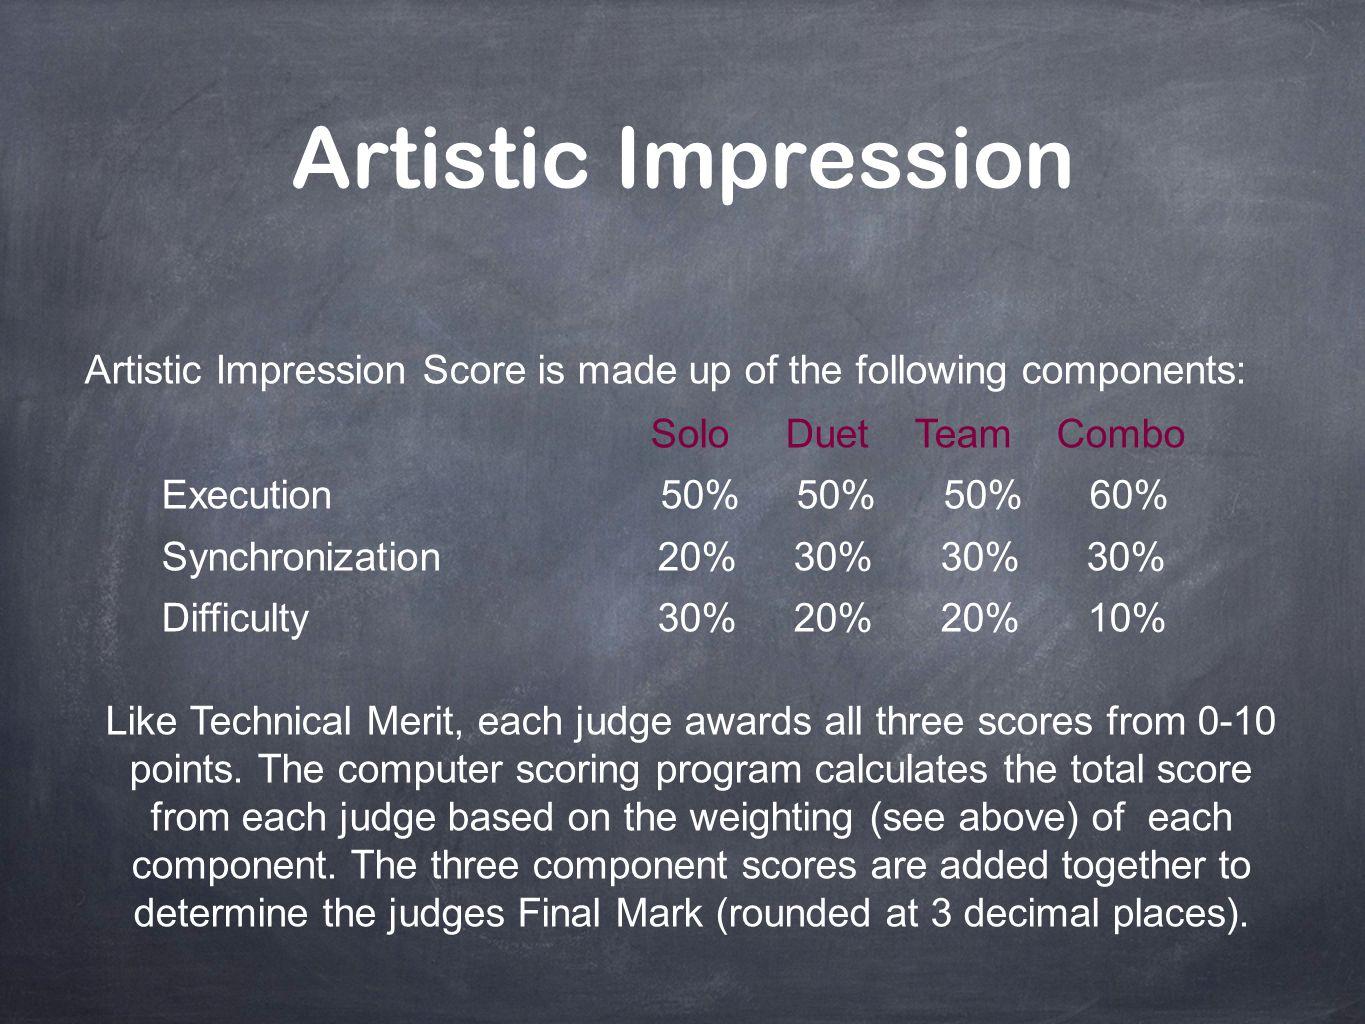 Artistic Impression Artistic Impression Score is made up of the following components: Solo Duet Team Combo.